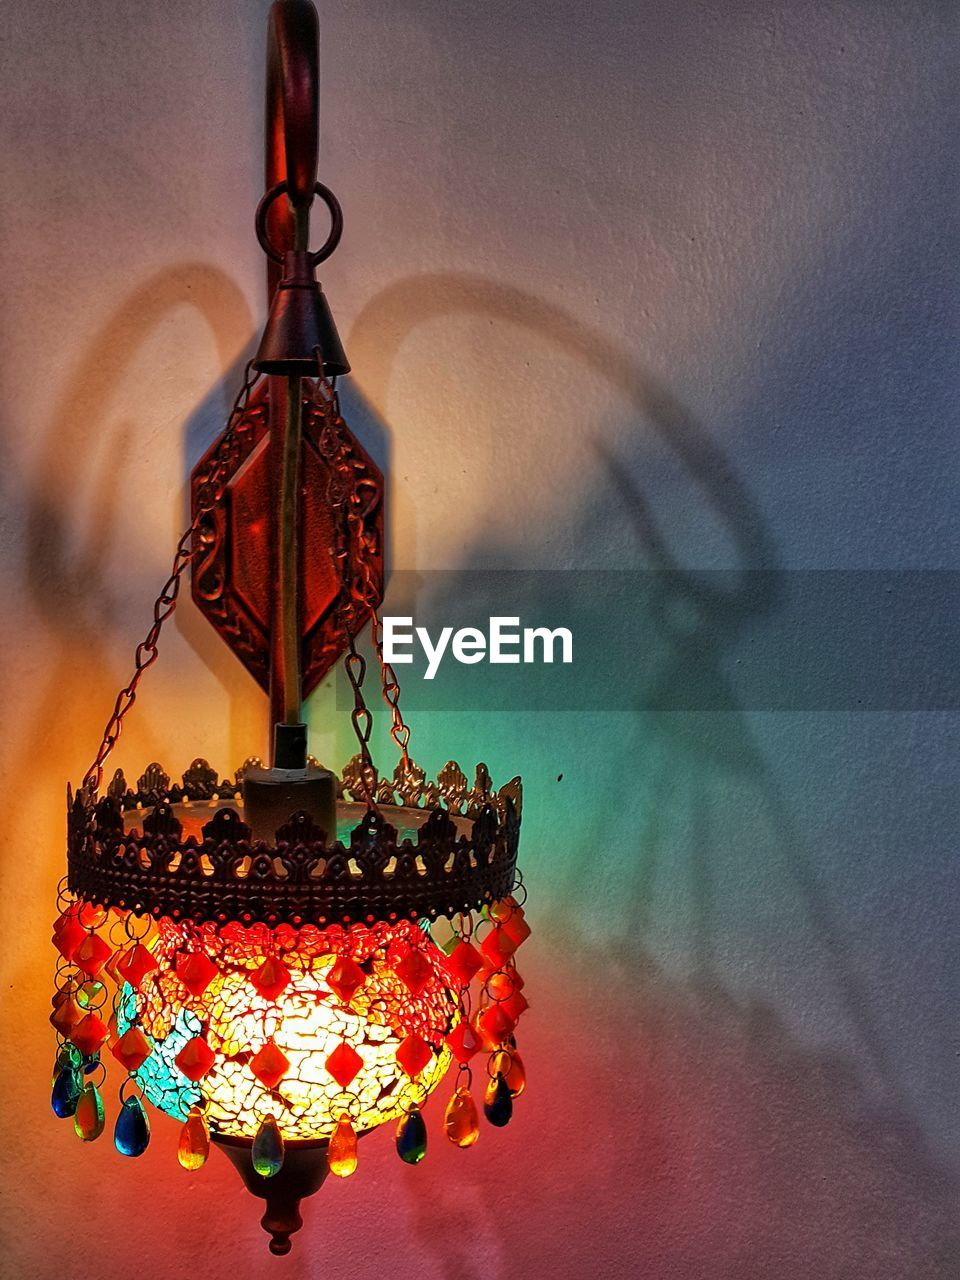 hanging, no people, illuminated, lighting equipment, decoration, wall - building feature, indoors, multi colored, blurred motion, nature, close-up, art and craft, sky, shadow, focus on foreground, red, sunset, craft, rainbow, ceiling, ornate, electric lamp